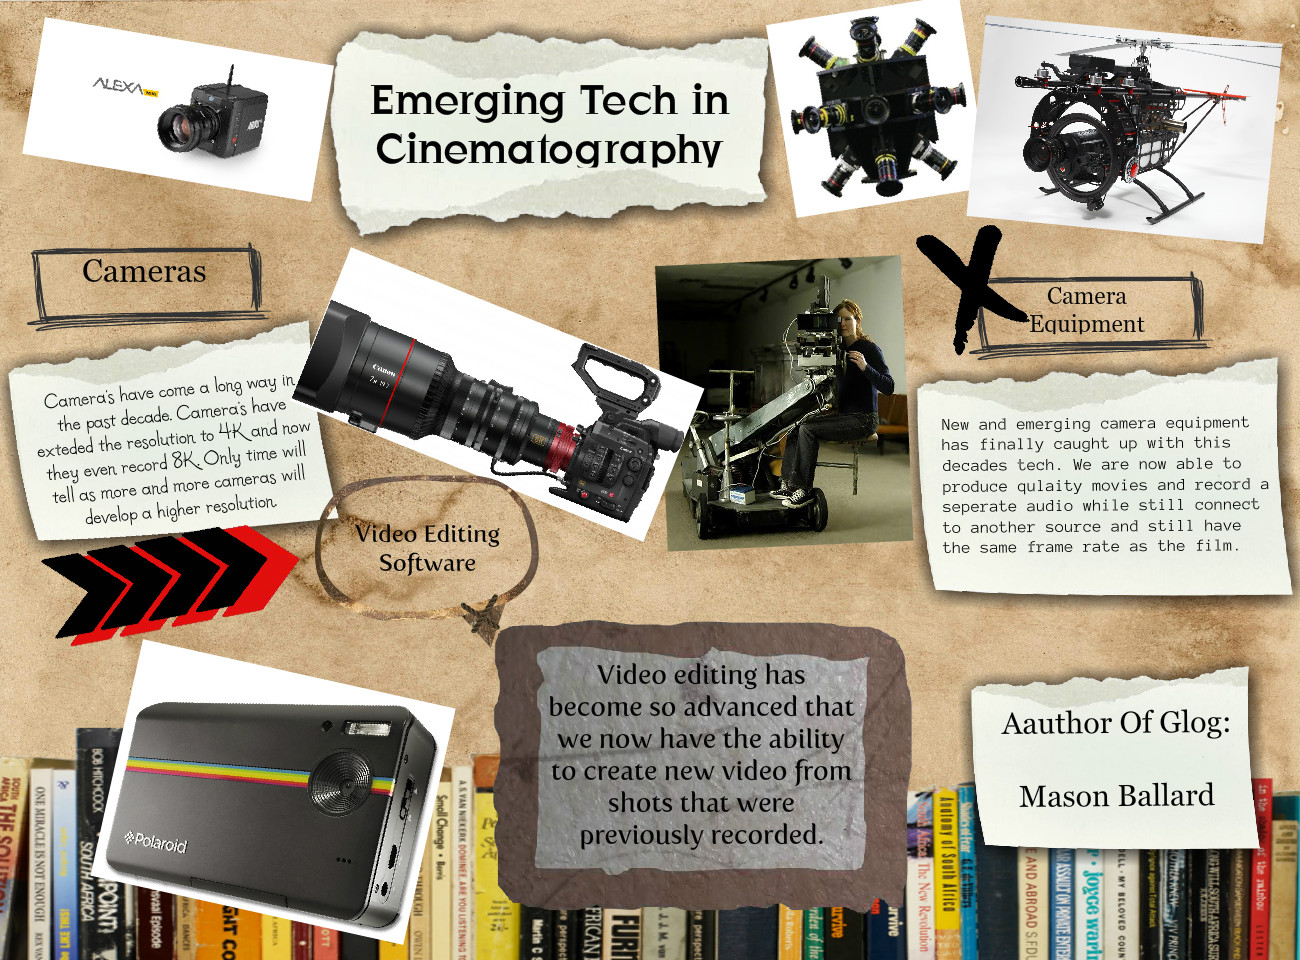 Emerging Tech in Cinematography